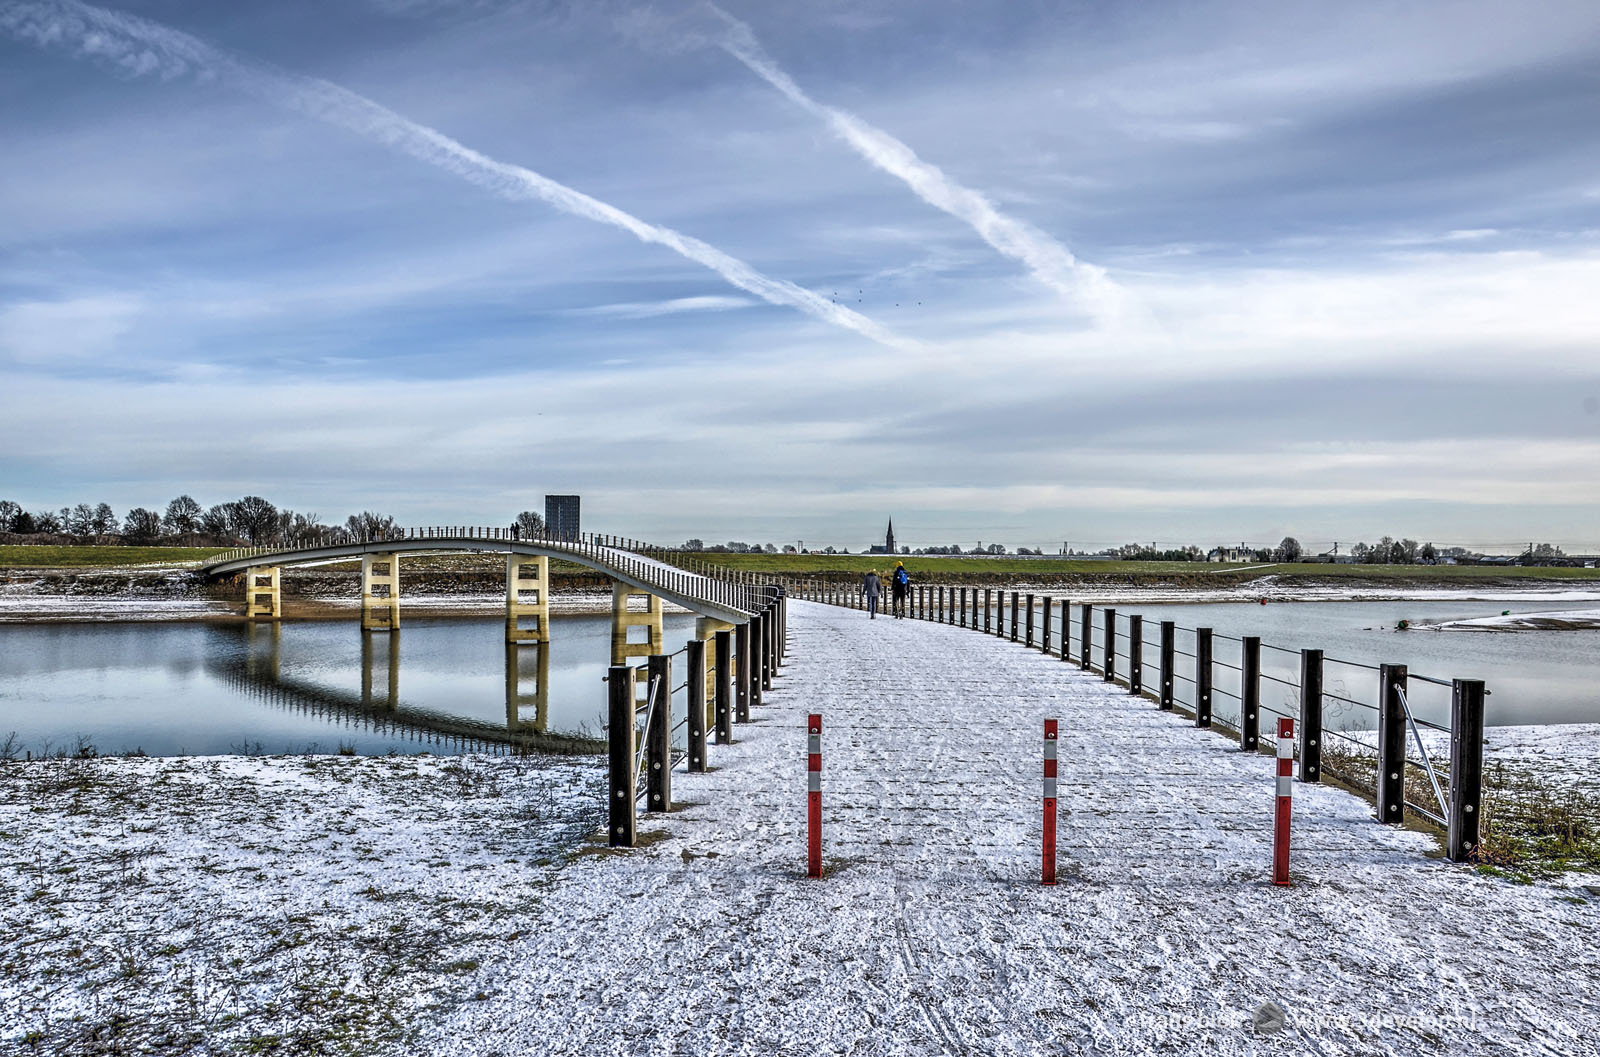 A bridge called the Zaligebrug across the new channel spiegelwaal near Nijmegen, covered with a thin layer of snow